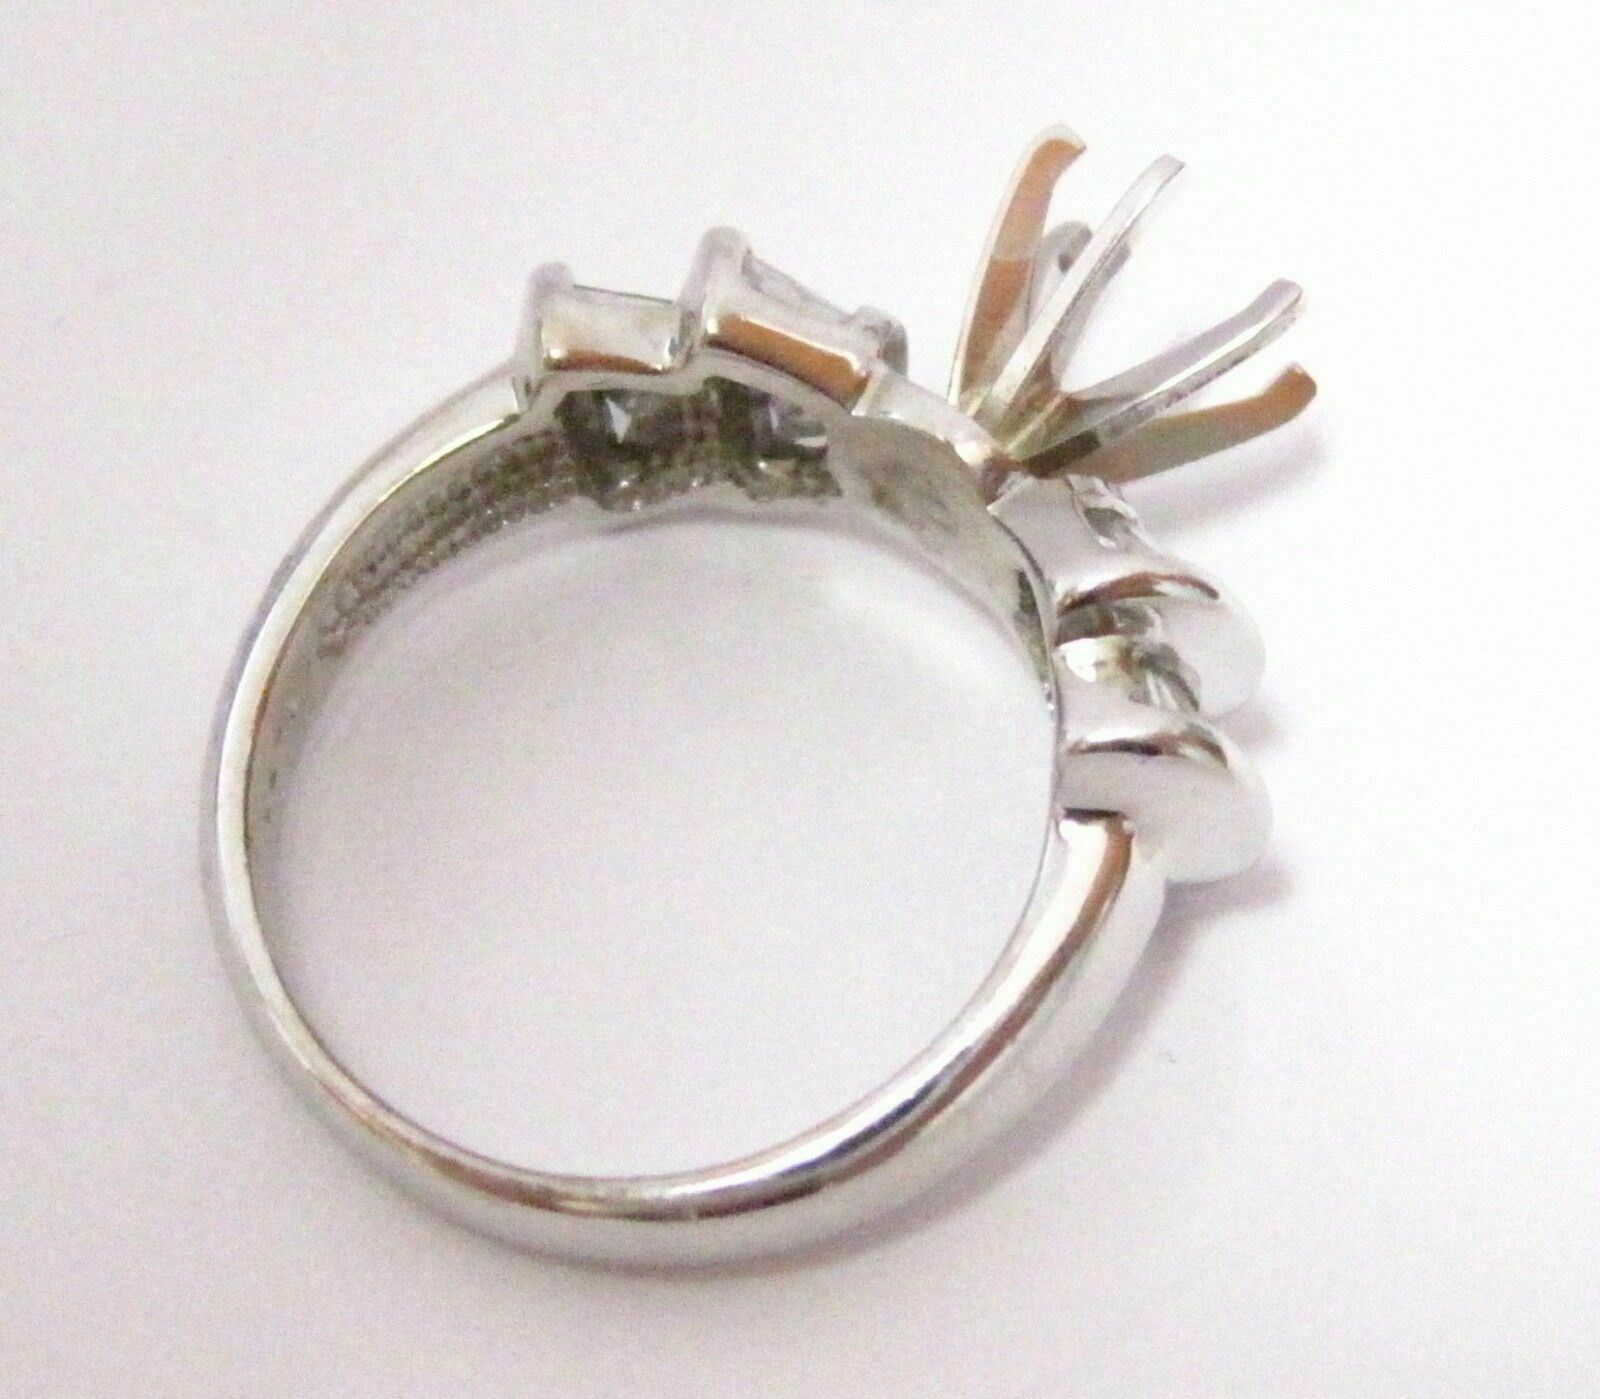 0.73 TCW 6 Prongs Semi-Mounting Round Diamond Bridal RIng 14k White Gold